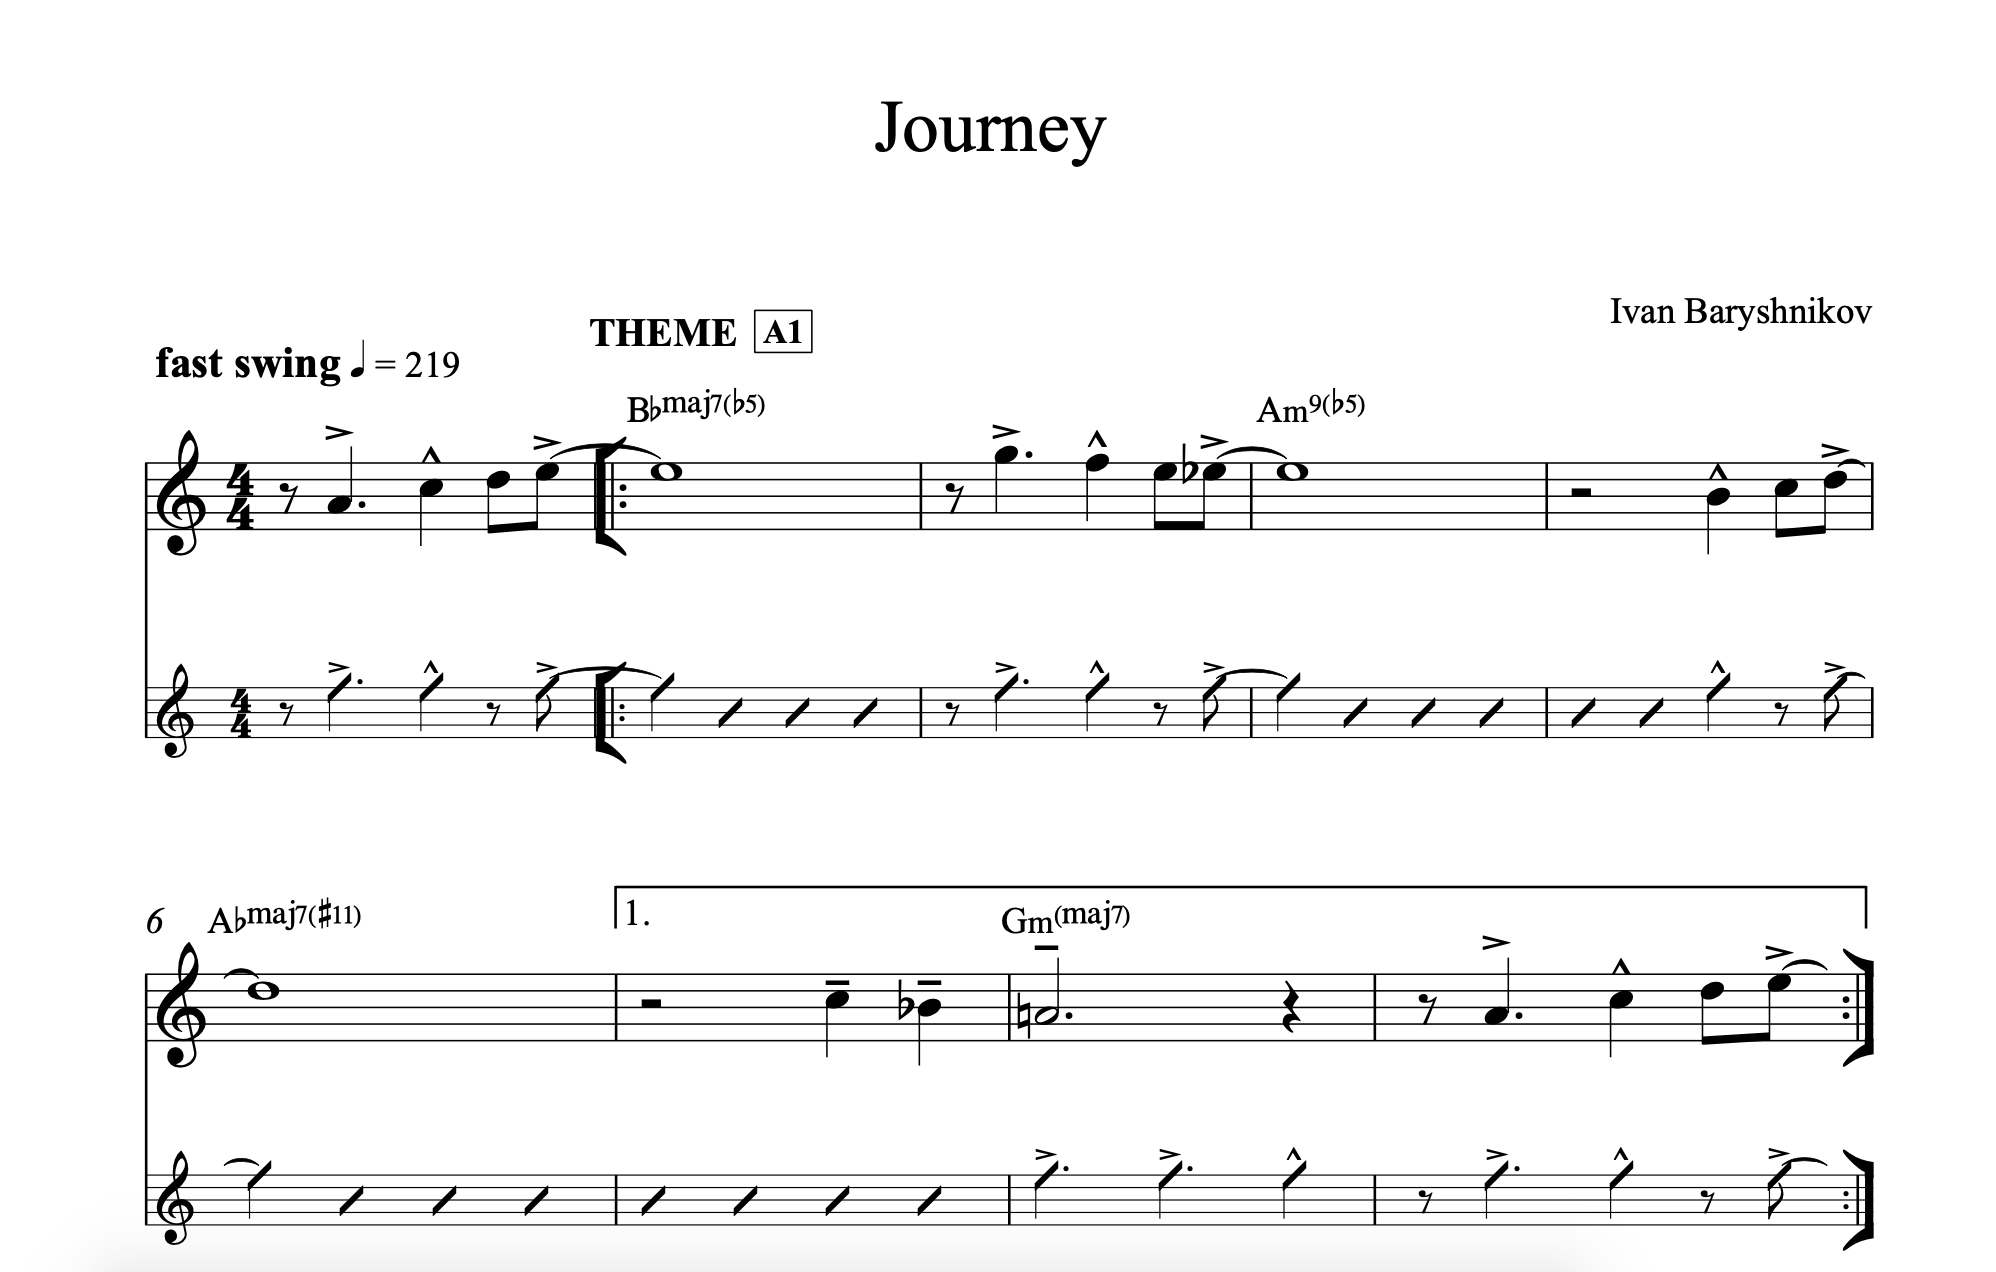 Journey (2018) - All Music Sheet in PDF (Bb and Concert)